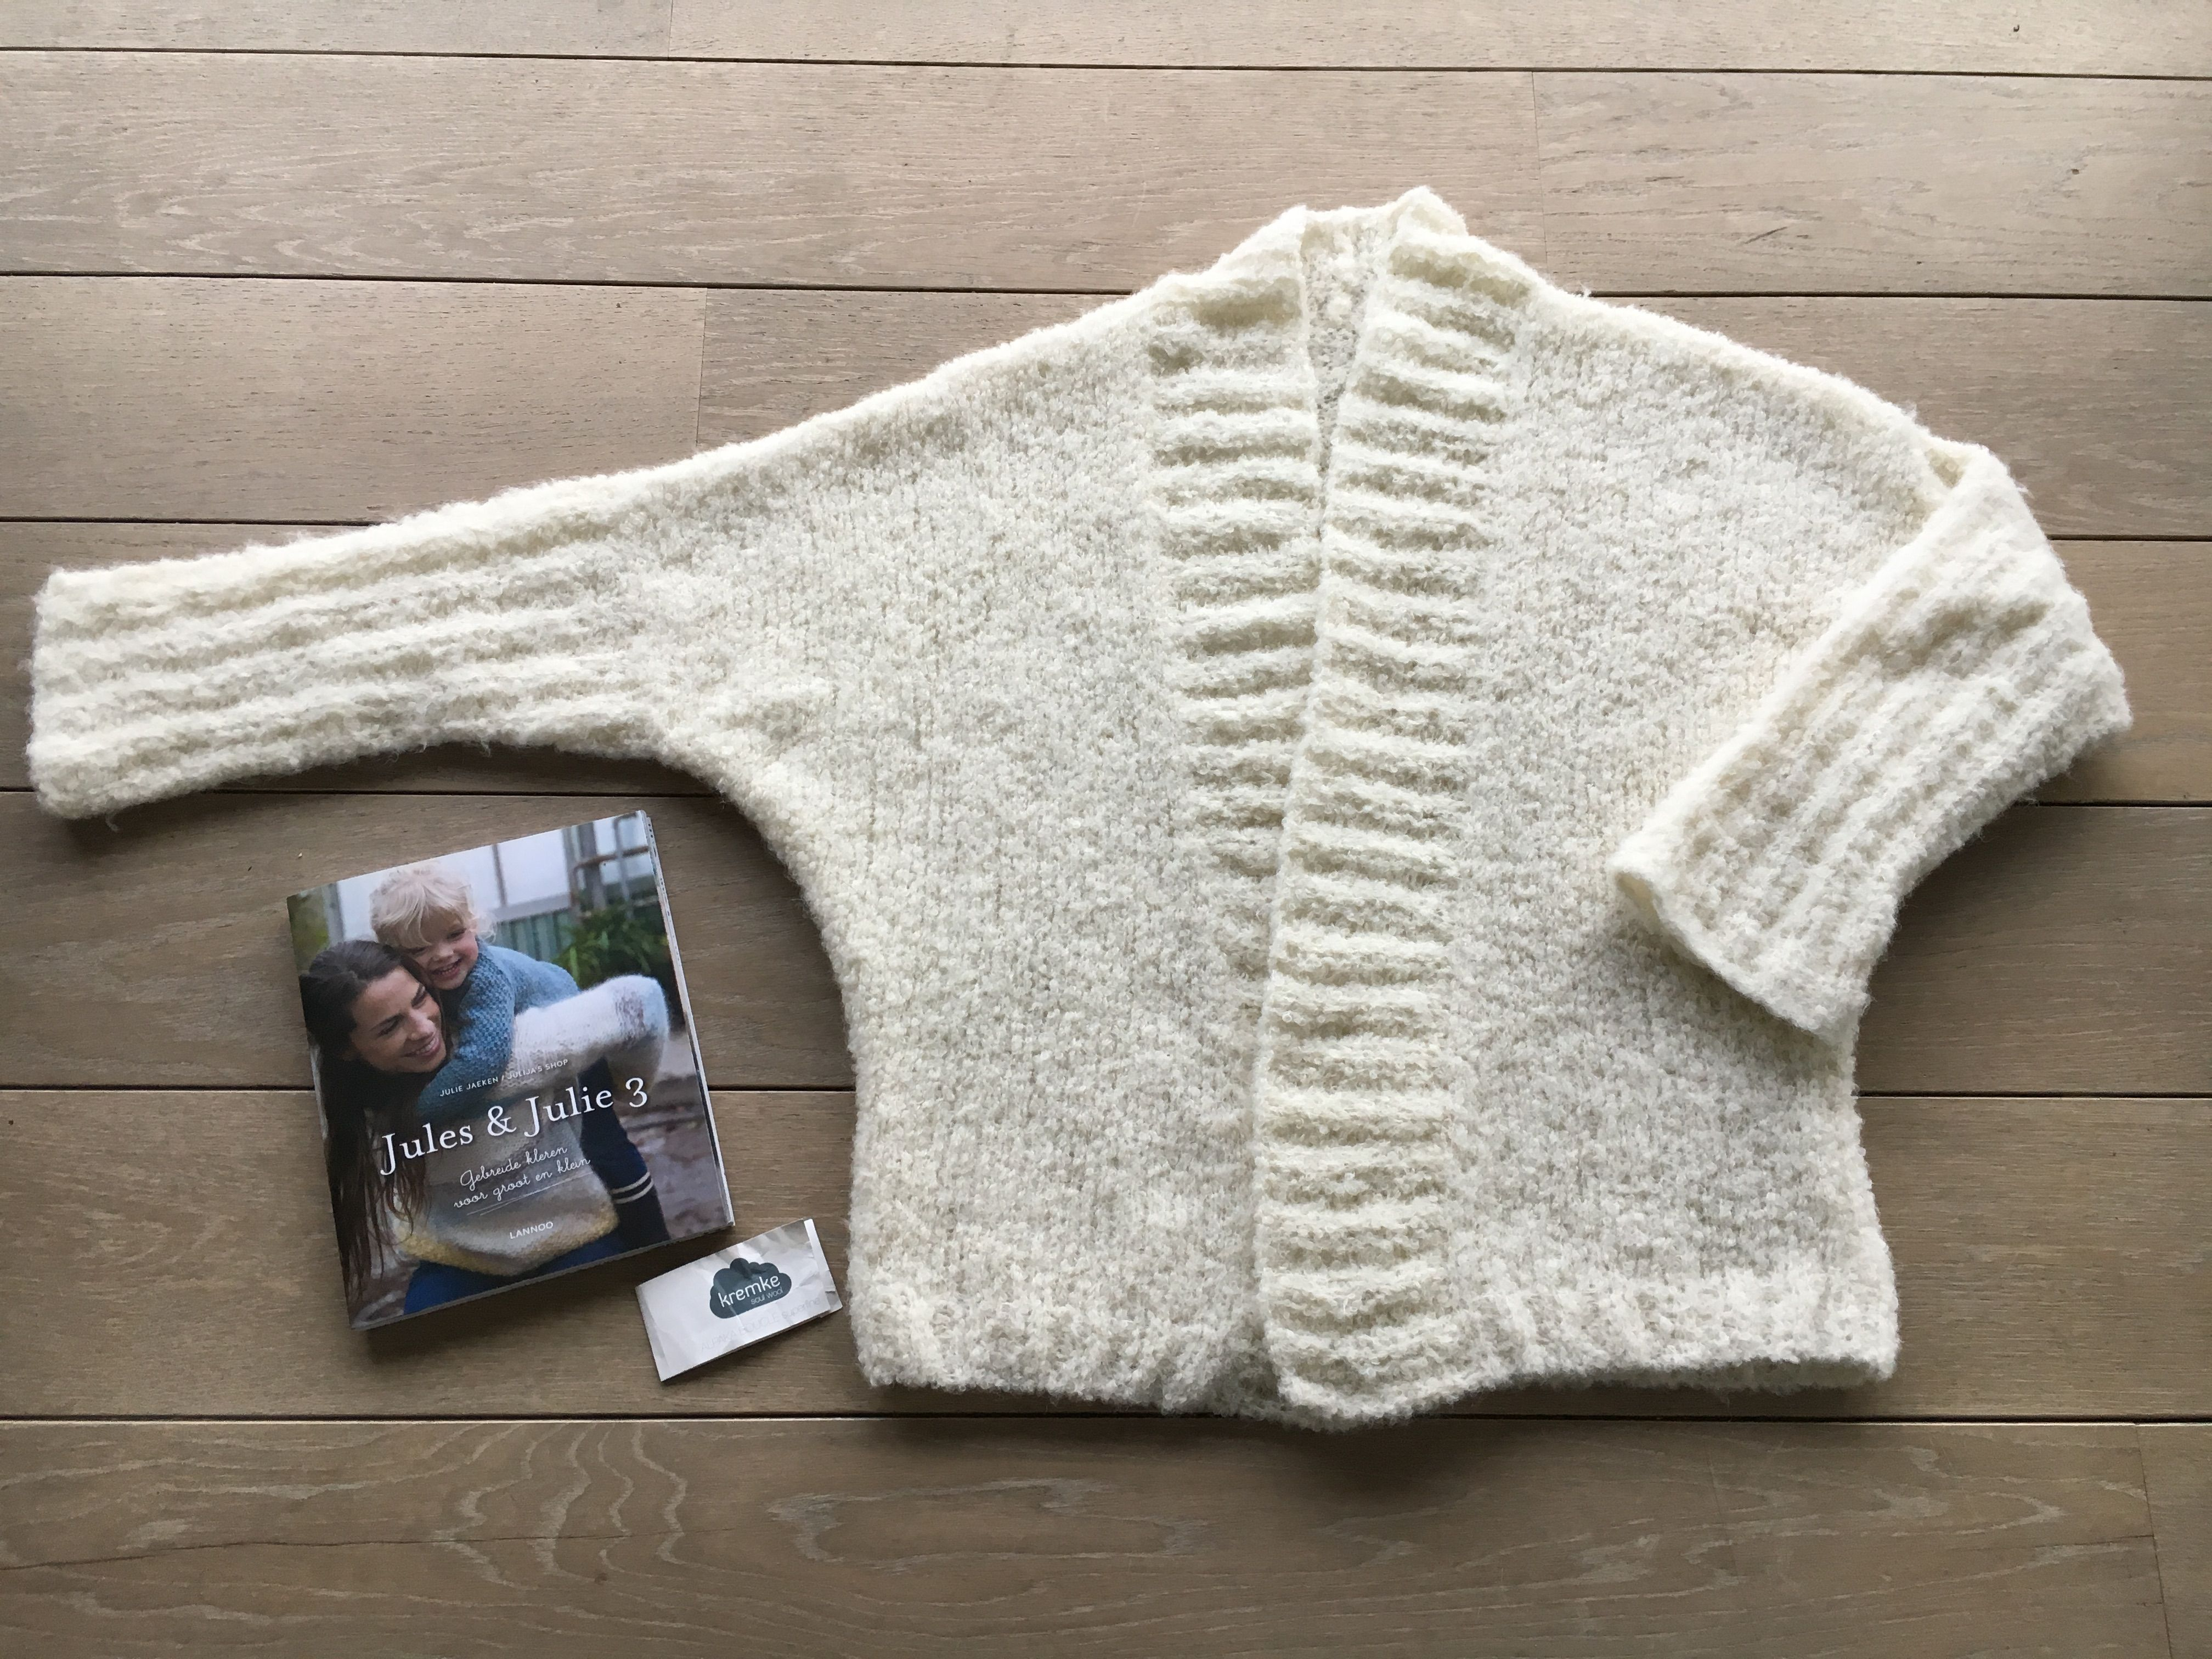 Groß Boucle Knitting Patterns Galerie - Strickmuster-Ideen ...